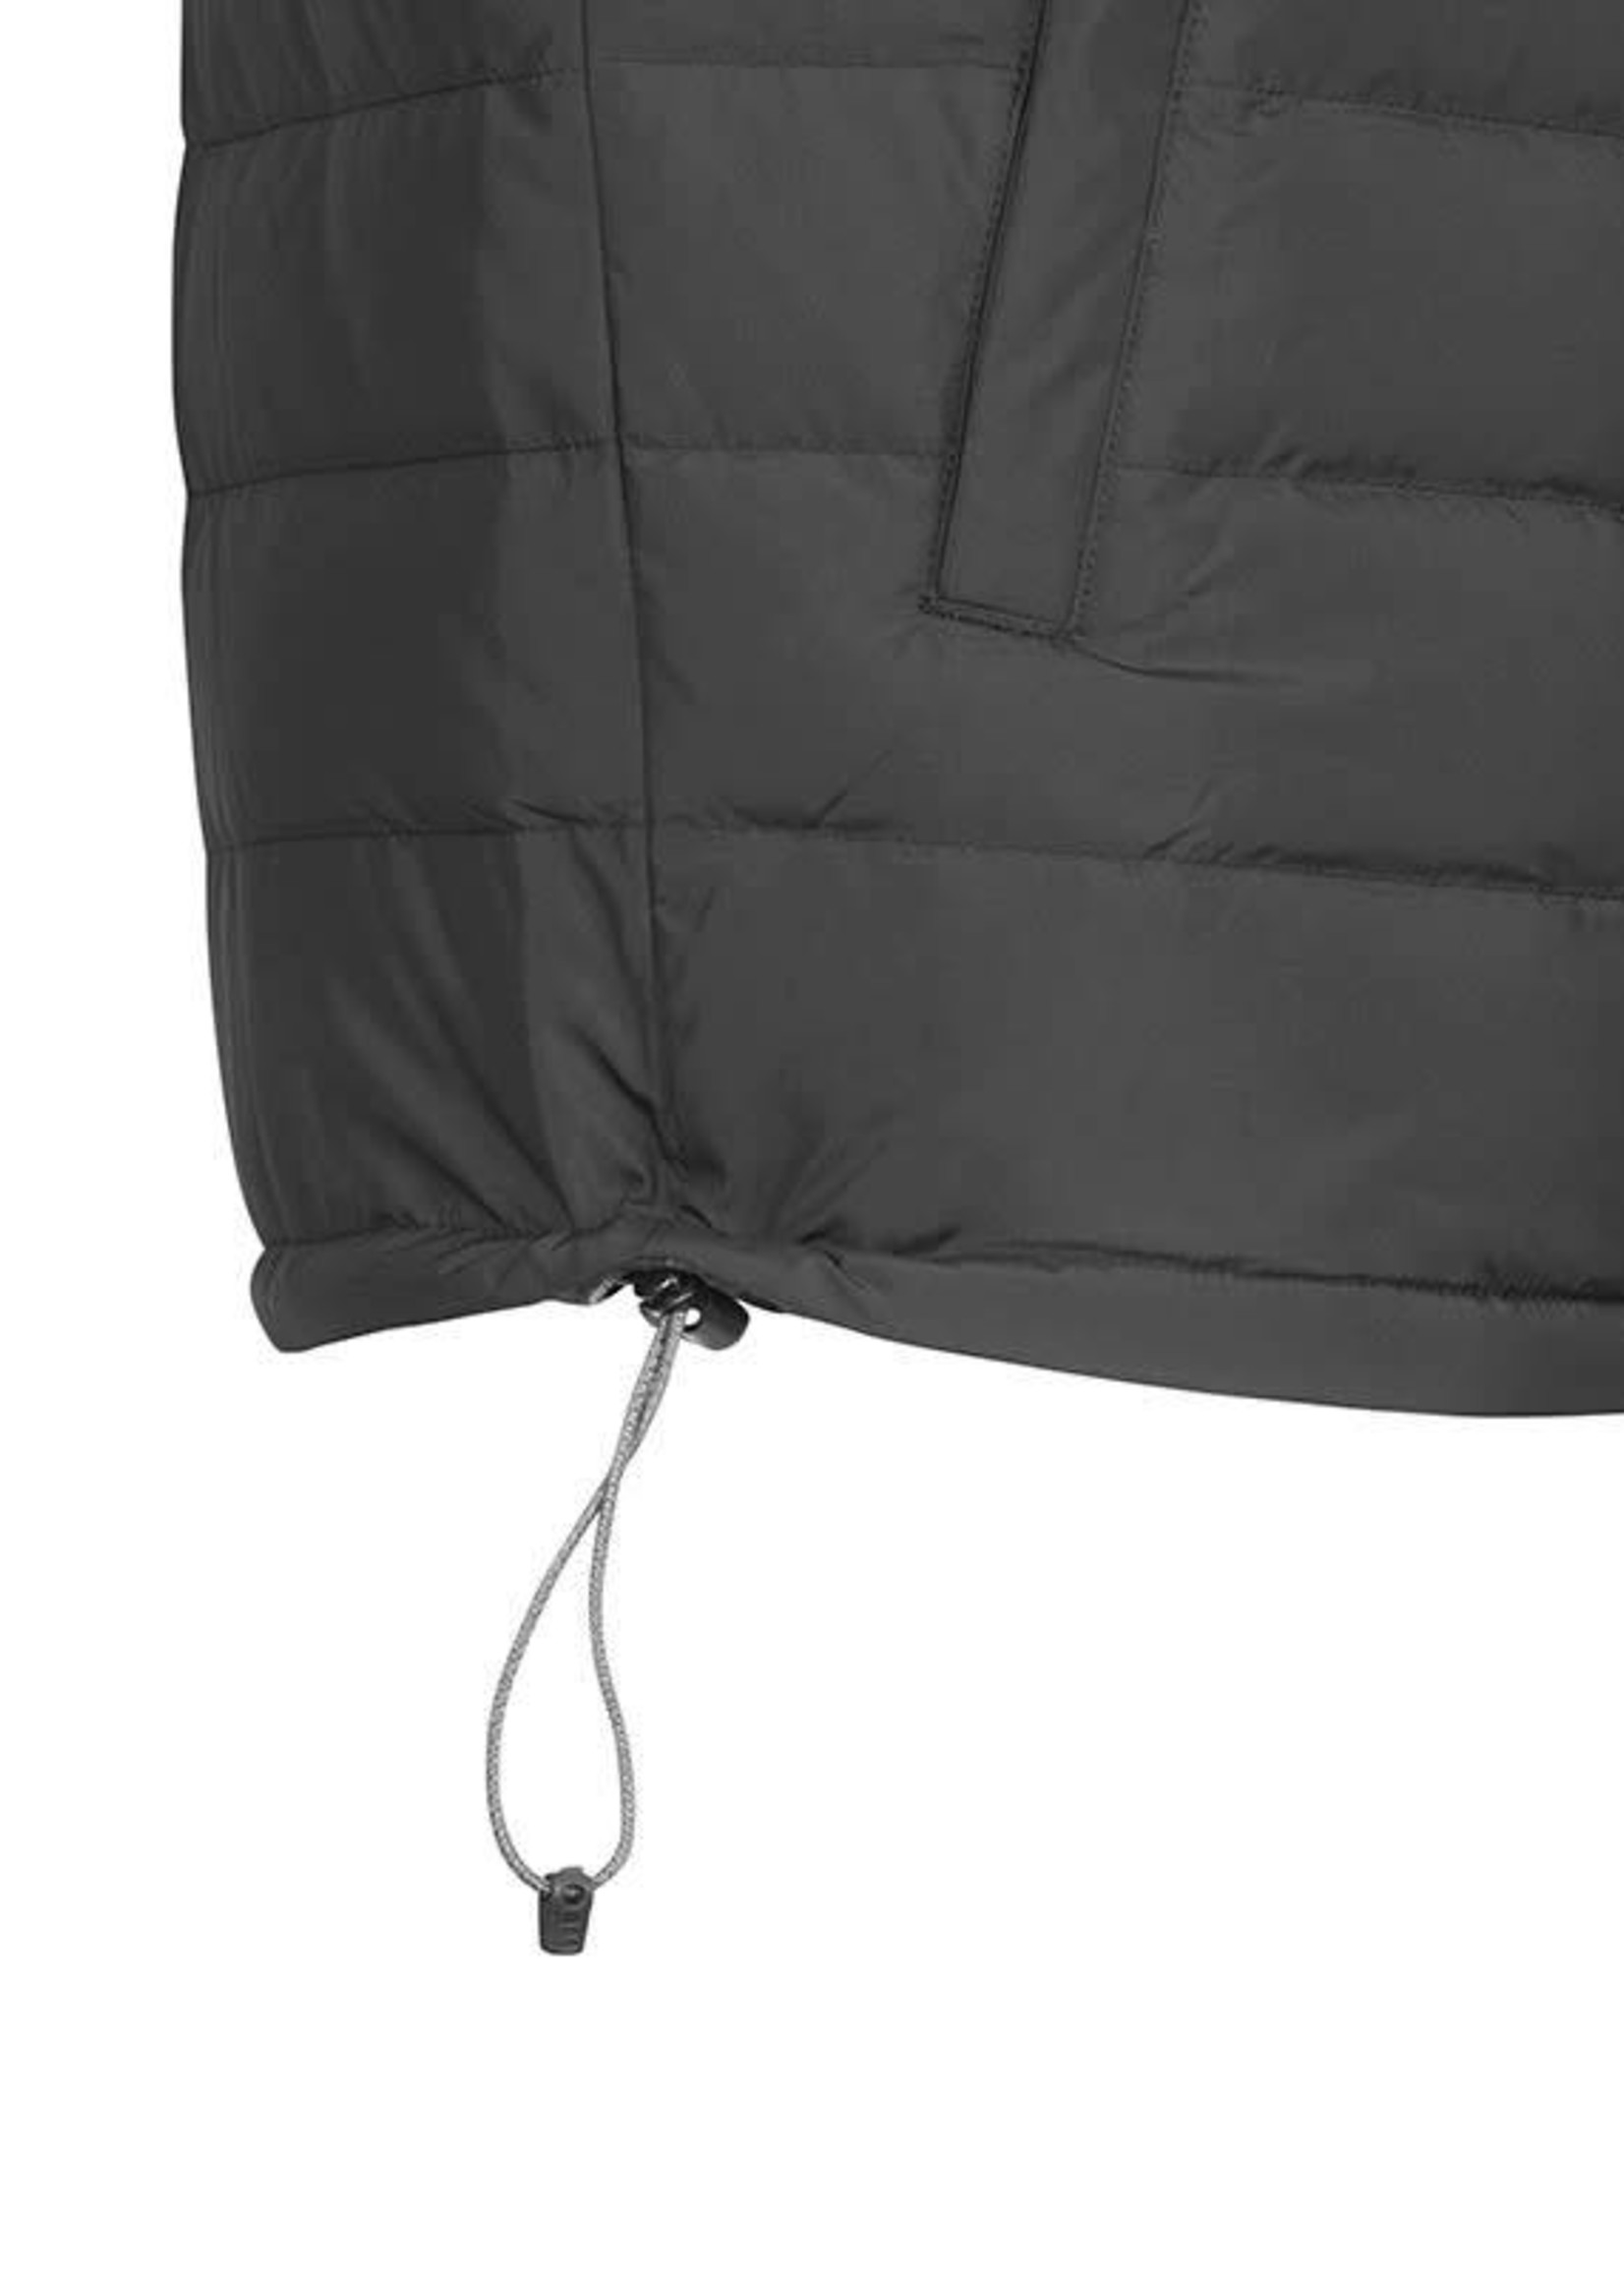 FJALL RAVEN GREENLAND DOWN LINER Jacket, BLACK